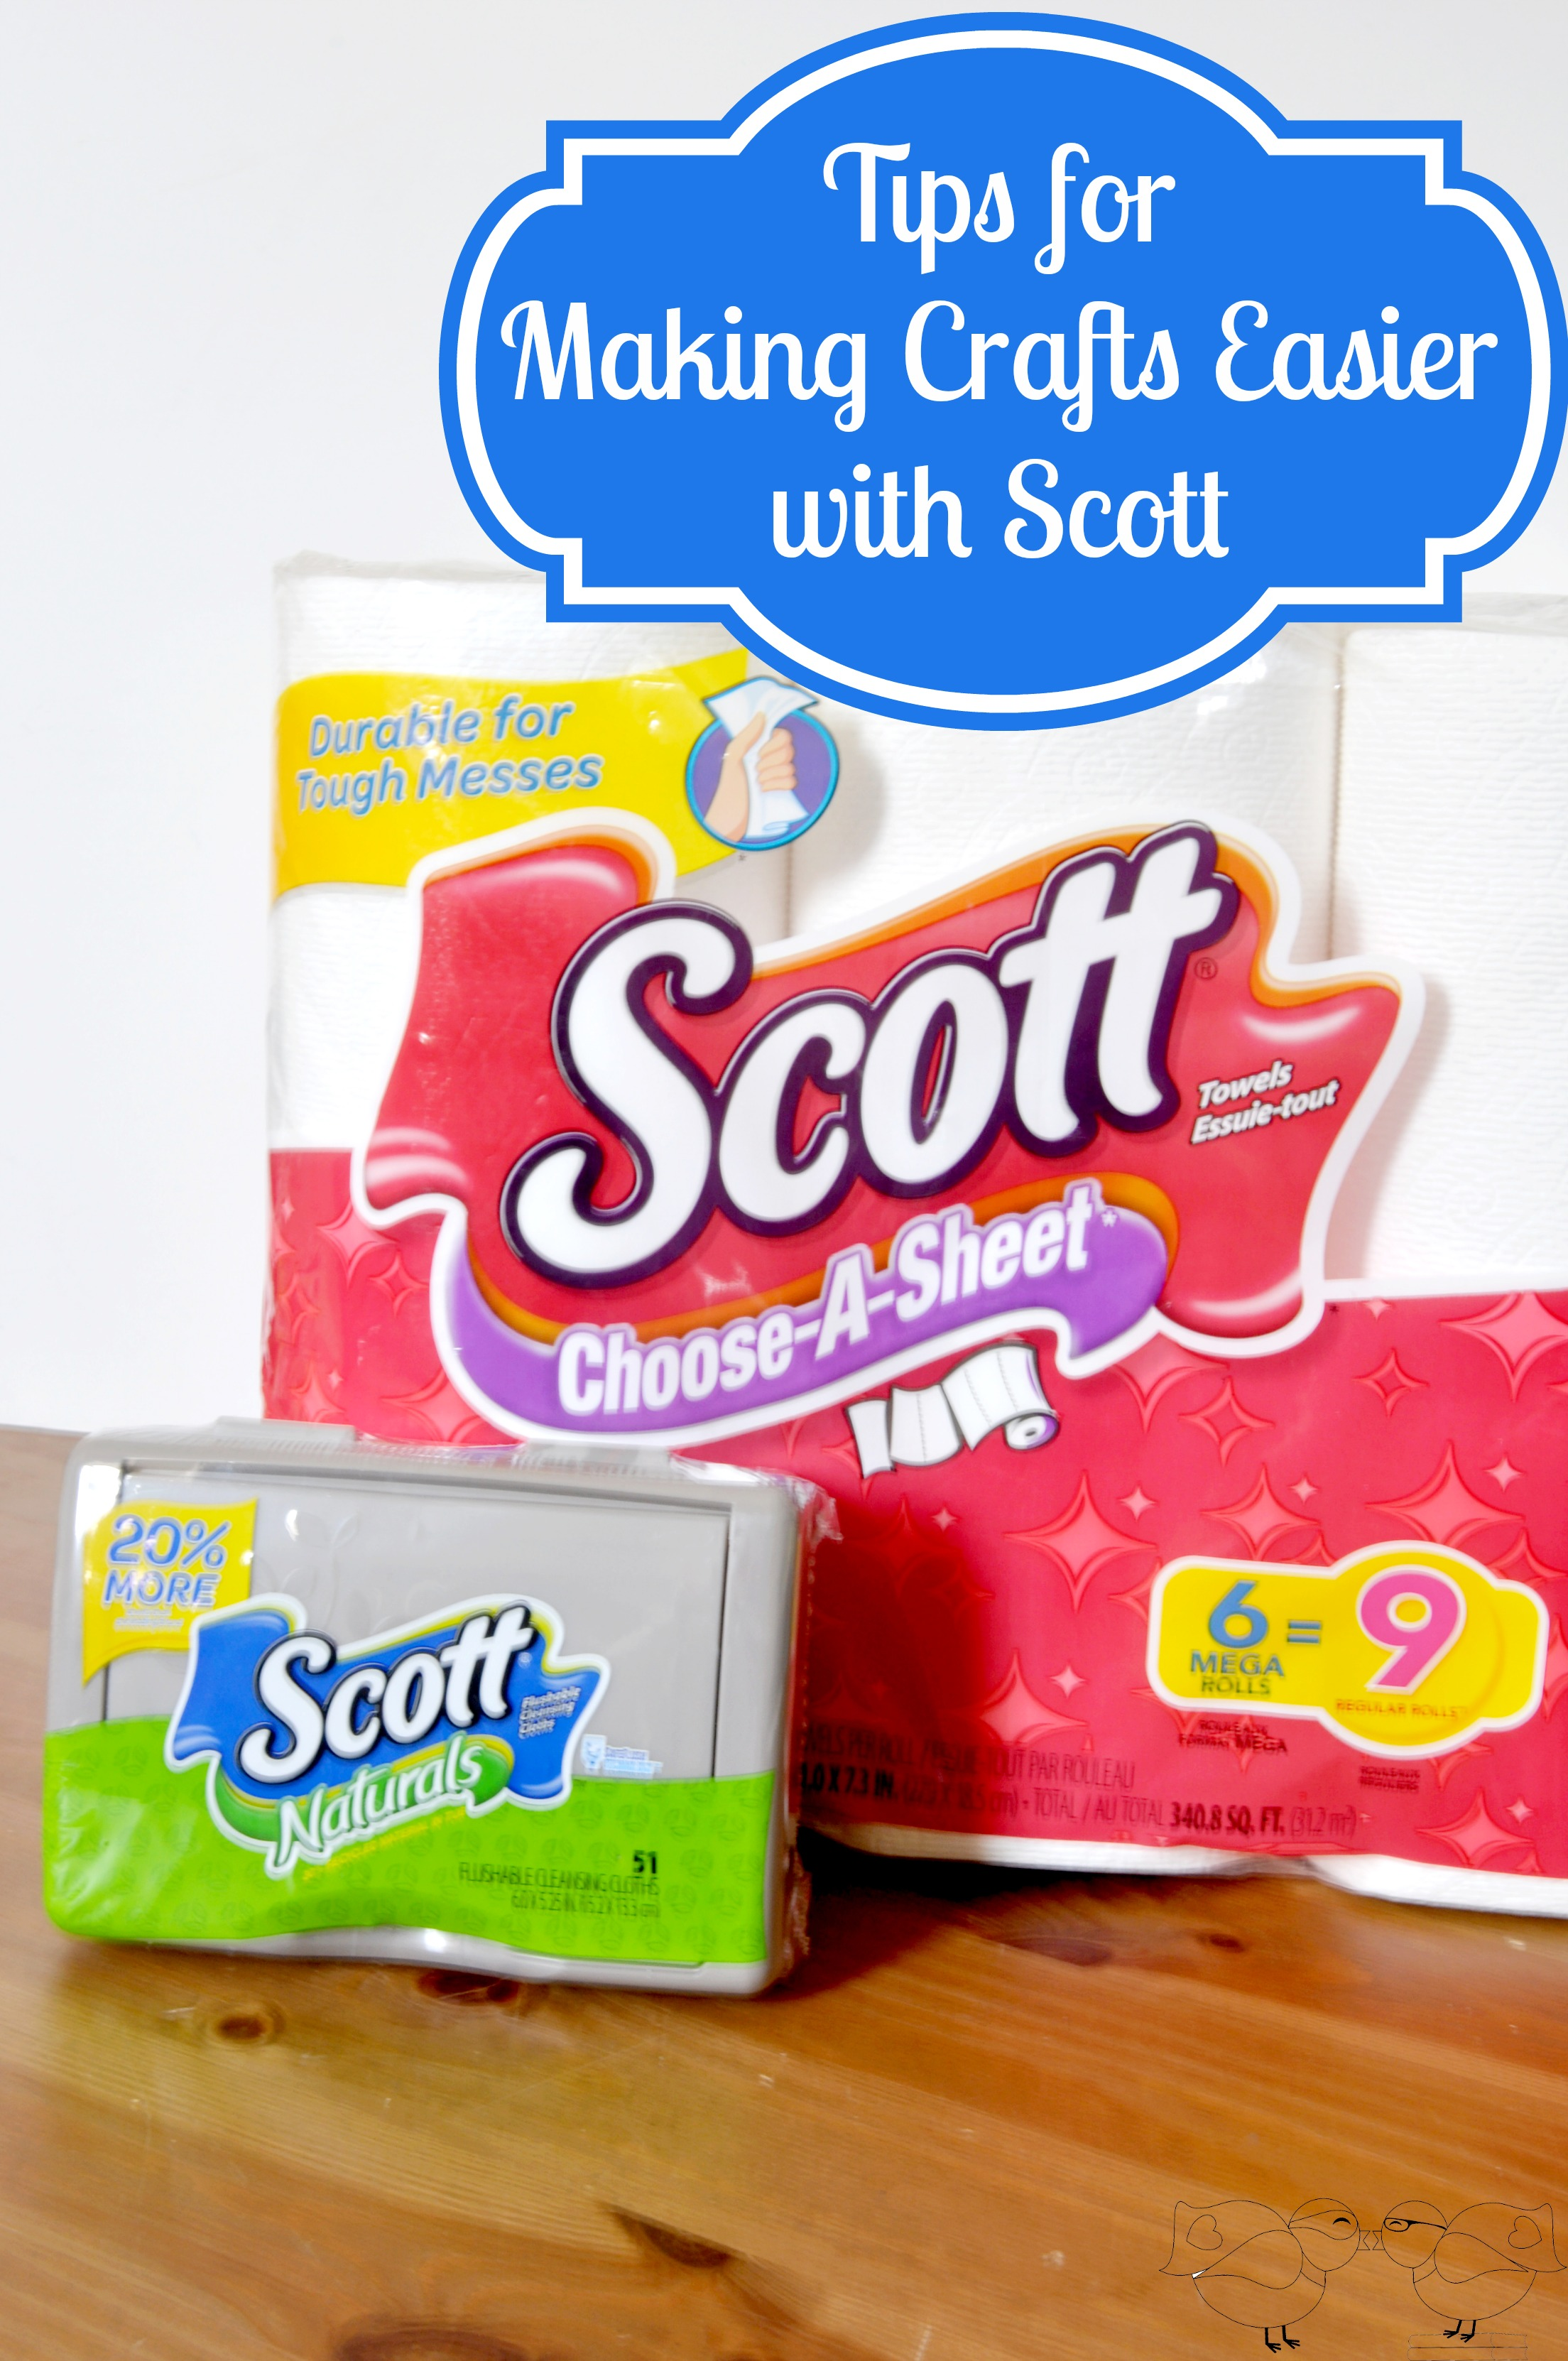 Tips for Making Crafts Easier with Scott Brand Paper Towels and moist wipes {The Love Nerds} #ScottValue #PMedia #ad